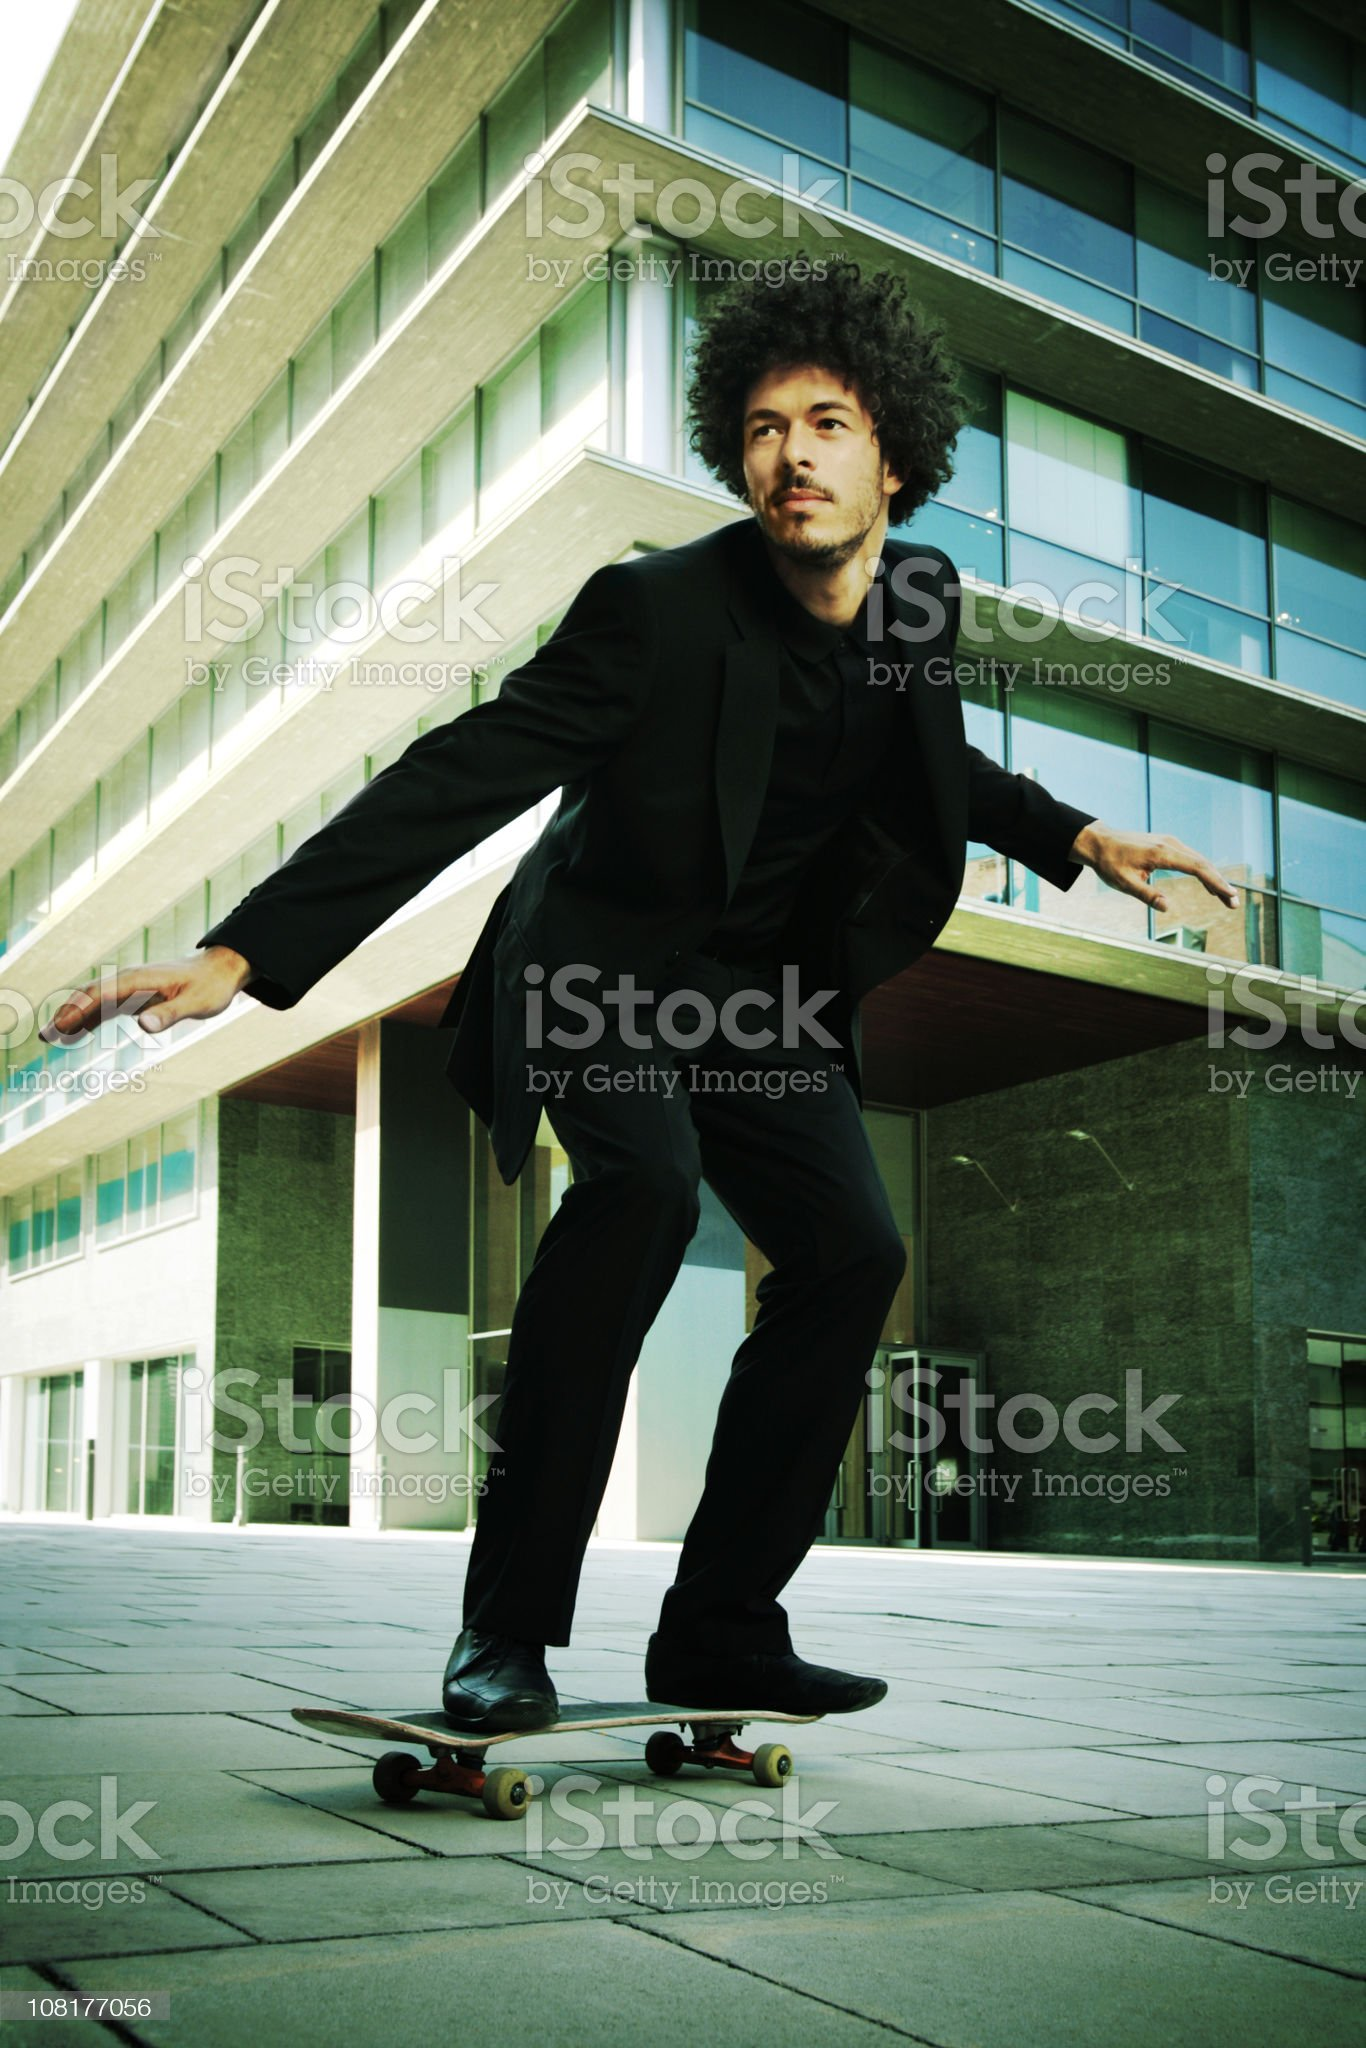 Businessman Skateboarding In Front of Office Building royalty-free stock photo